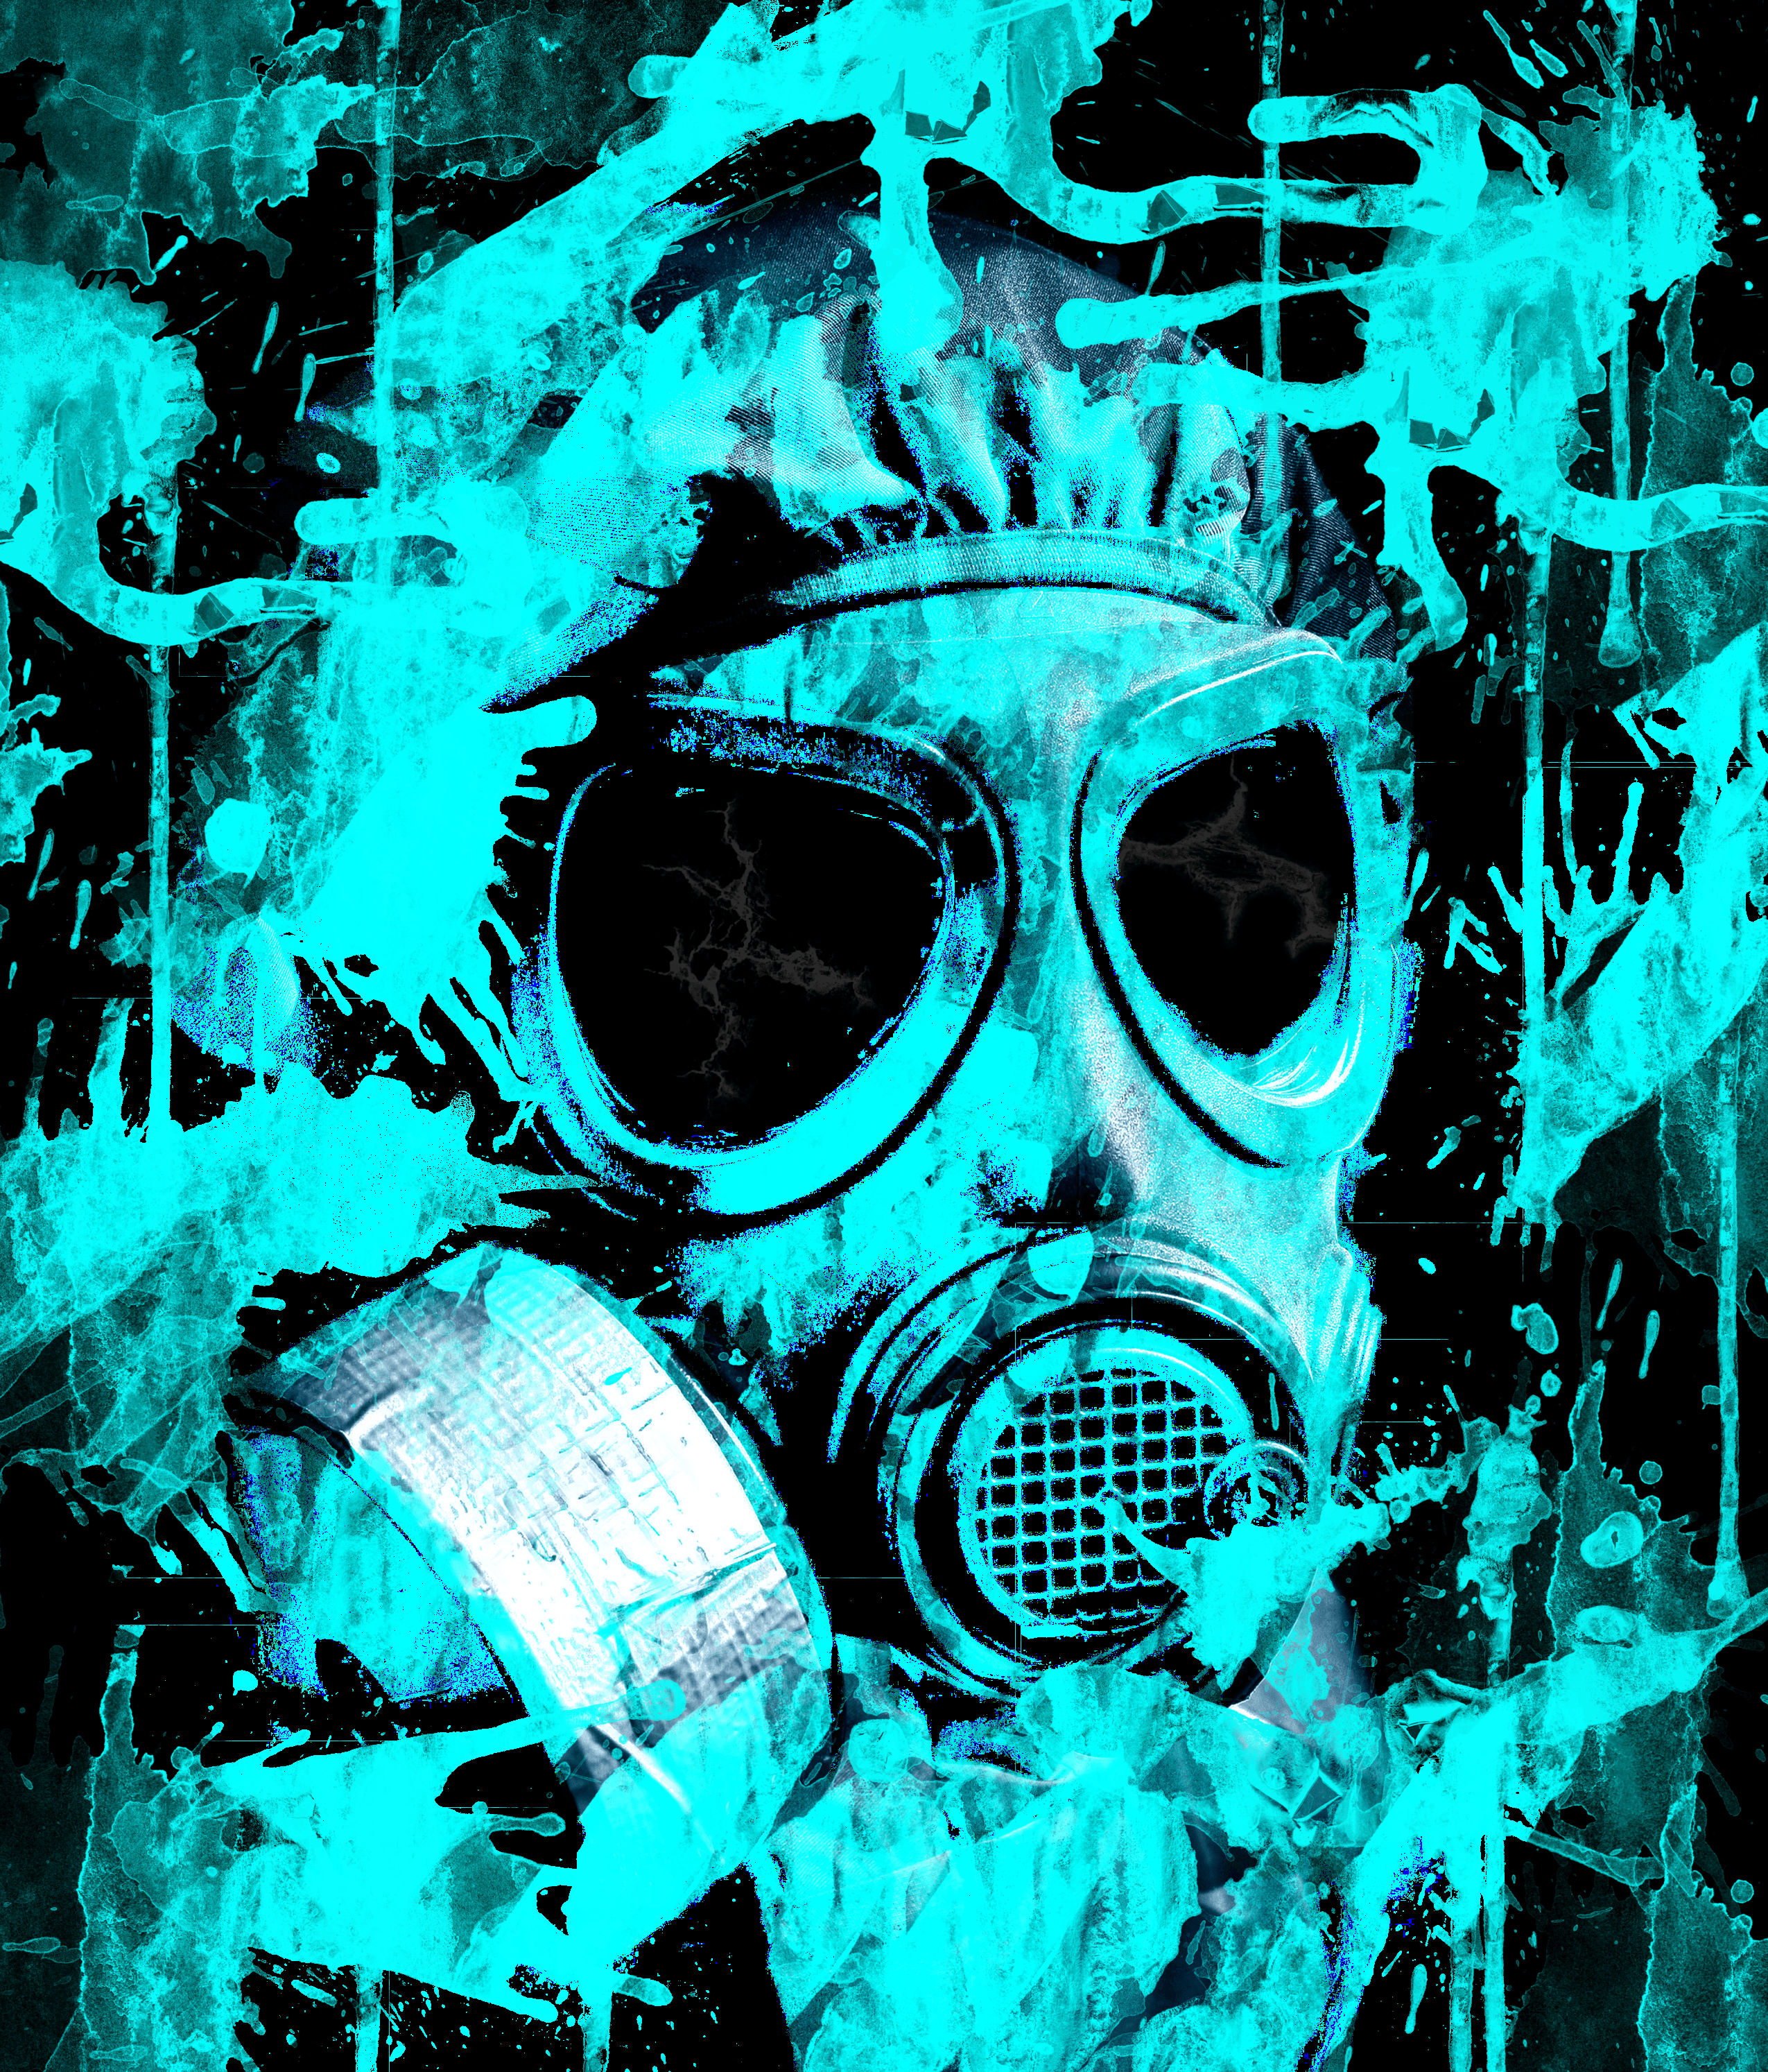 Unduh 990+ Background Quotes Mask Neon Gratis Terbaru